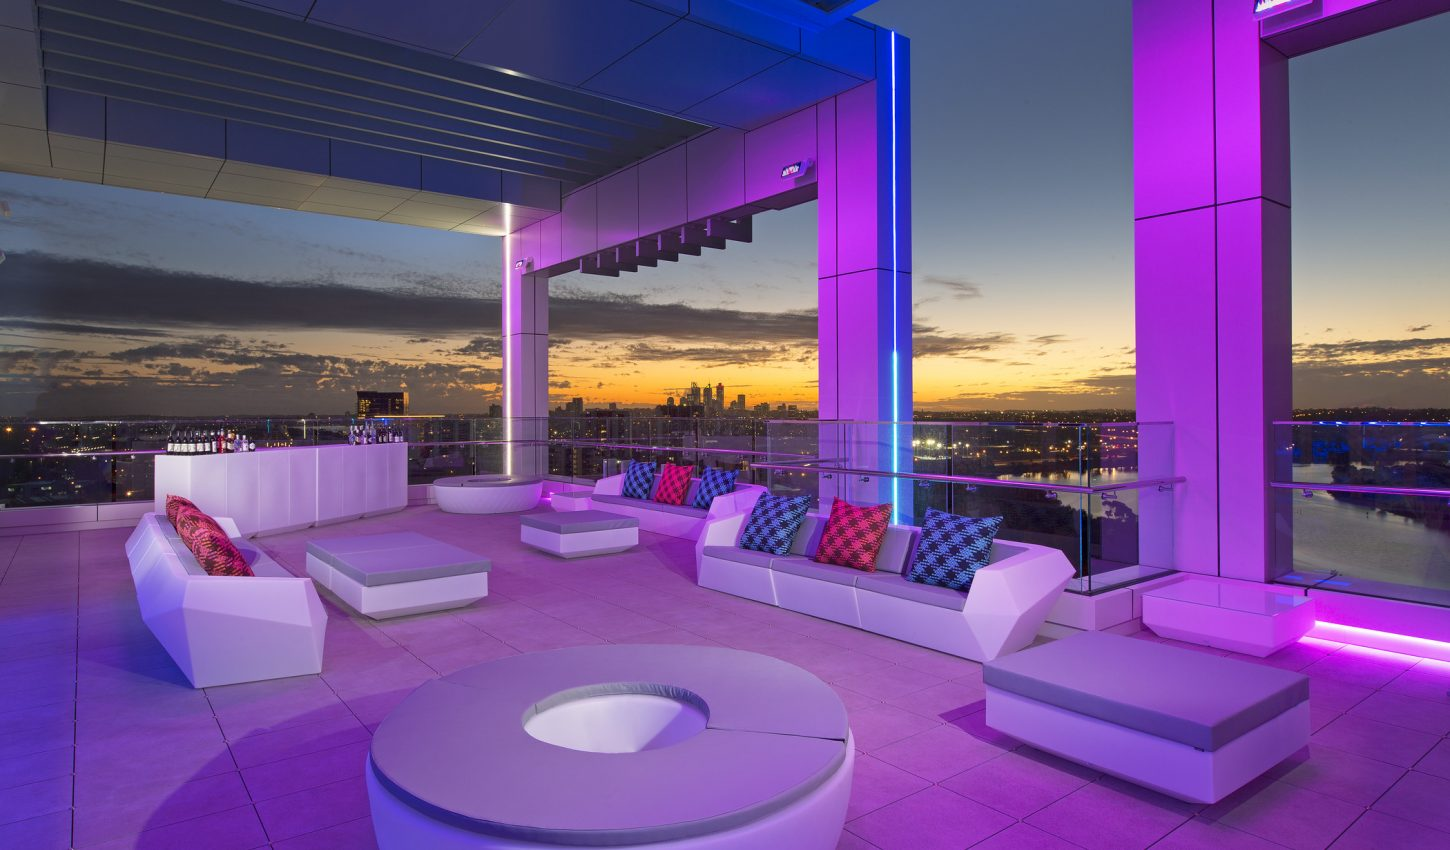 The terrace lounge perth home decorations idea for 181 st georges terrace perth